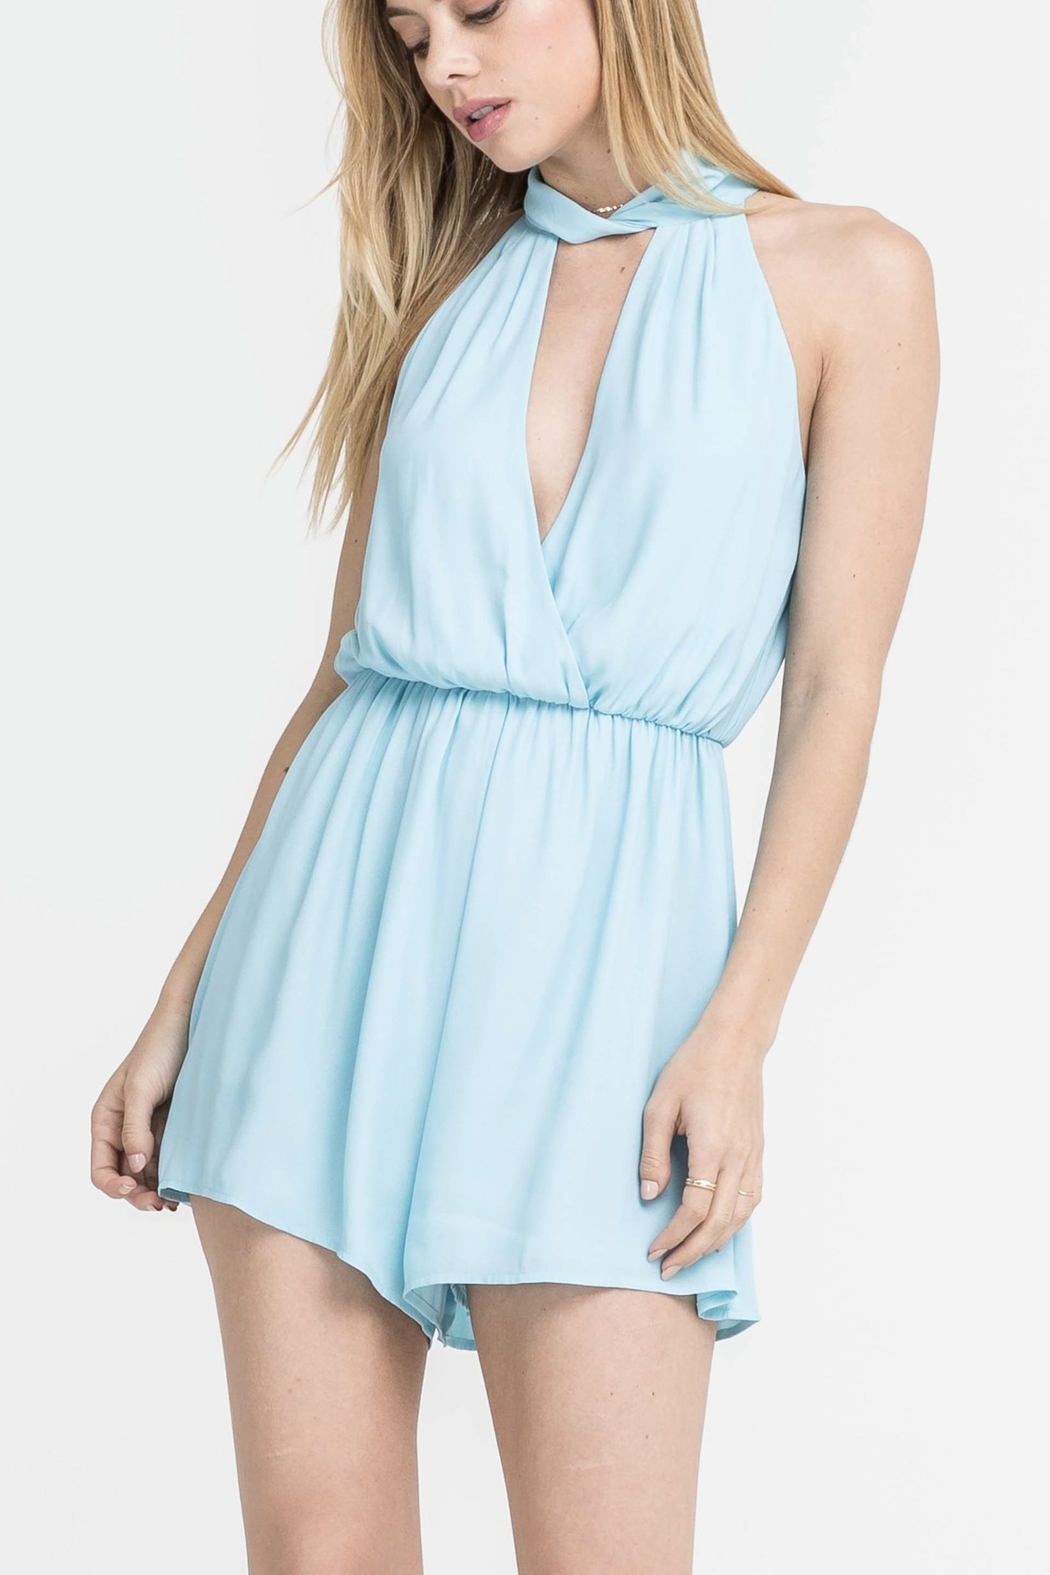 60230e782870 Lush Blue Halter Romper from Florida by Apricot Lane St. Armands ...